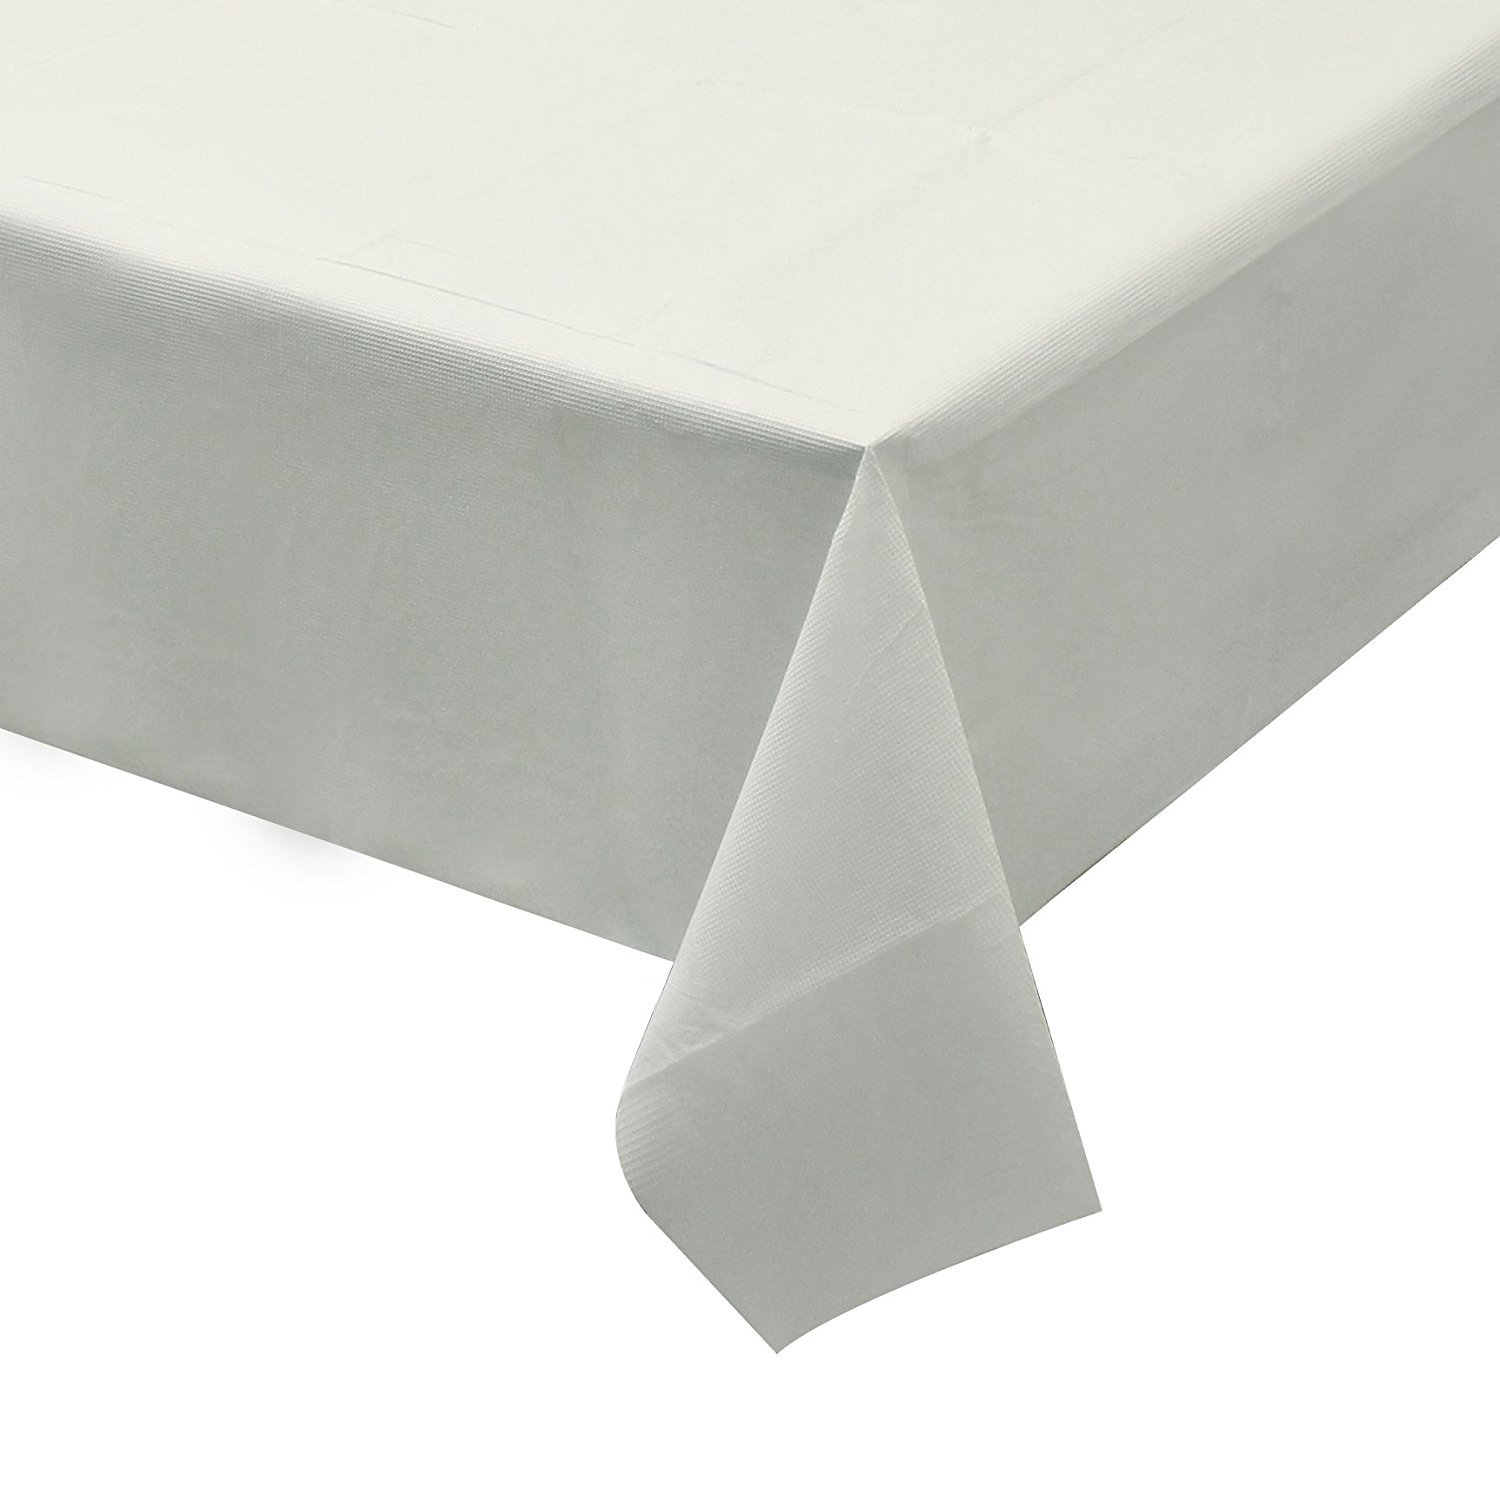 Party Bargains Disposable Table Cover | Classic White Paper 3 Ply Premium & Elegant Plastic Table Covers - Size 54'' X 108'' | Pack of 5 by Party Bargains (Image #3)